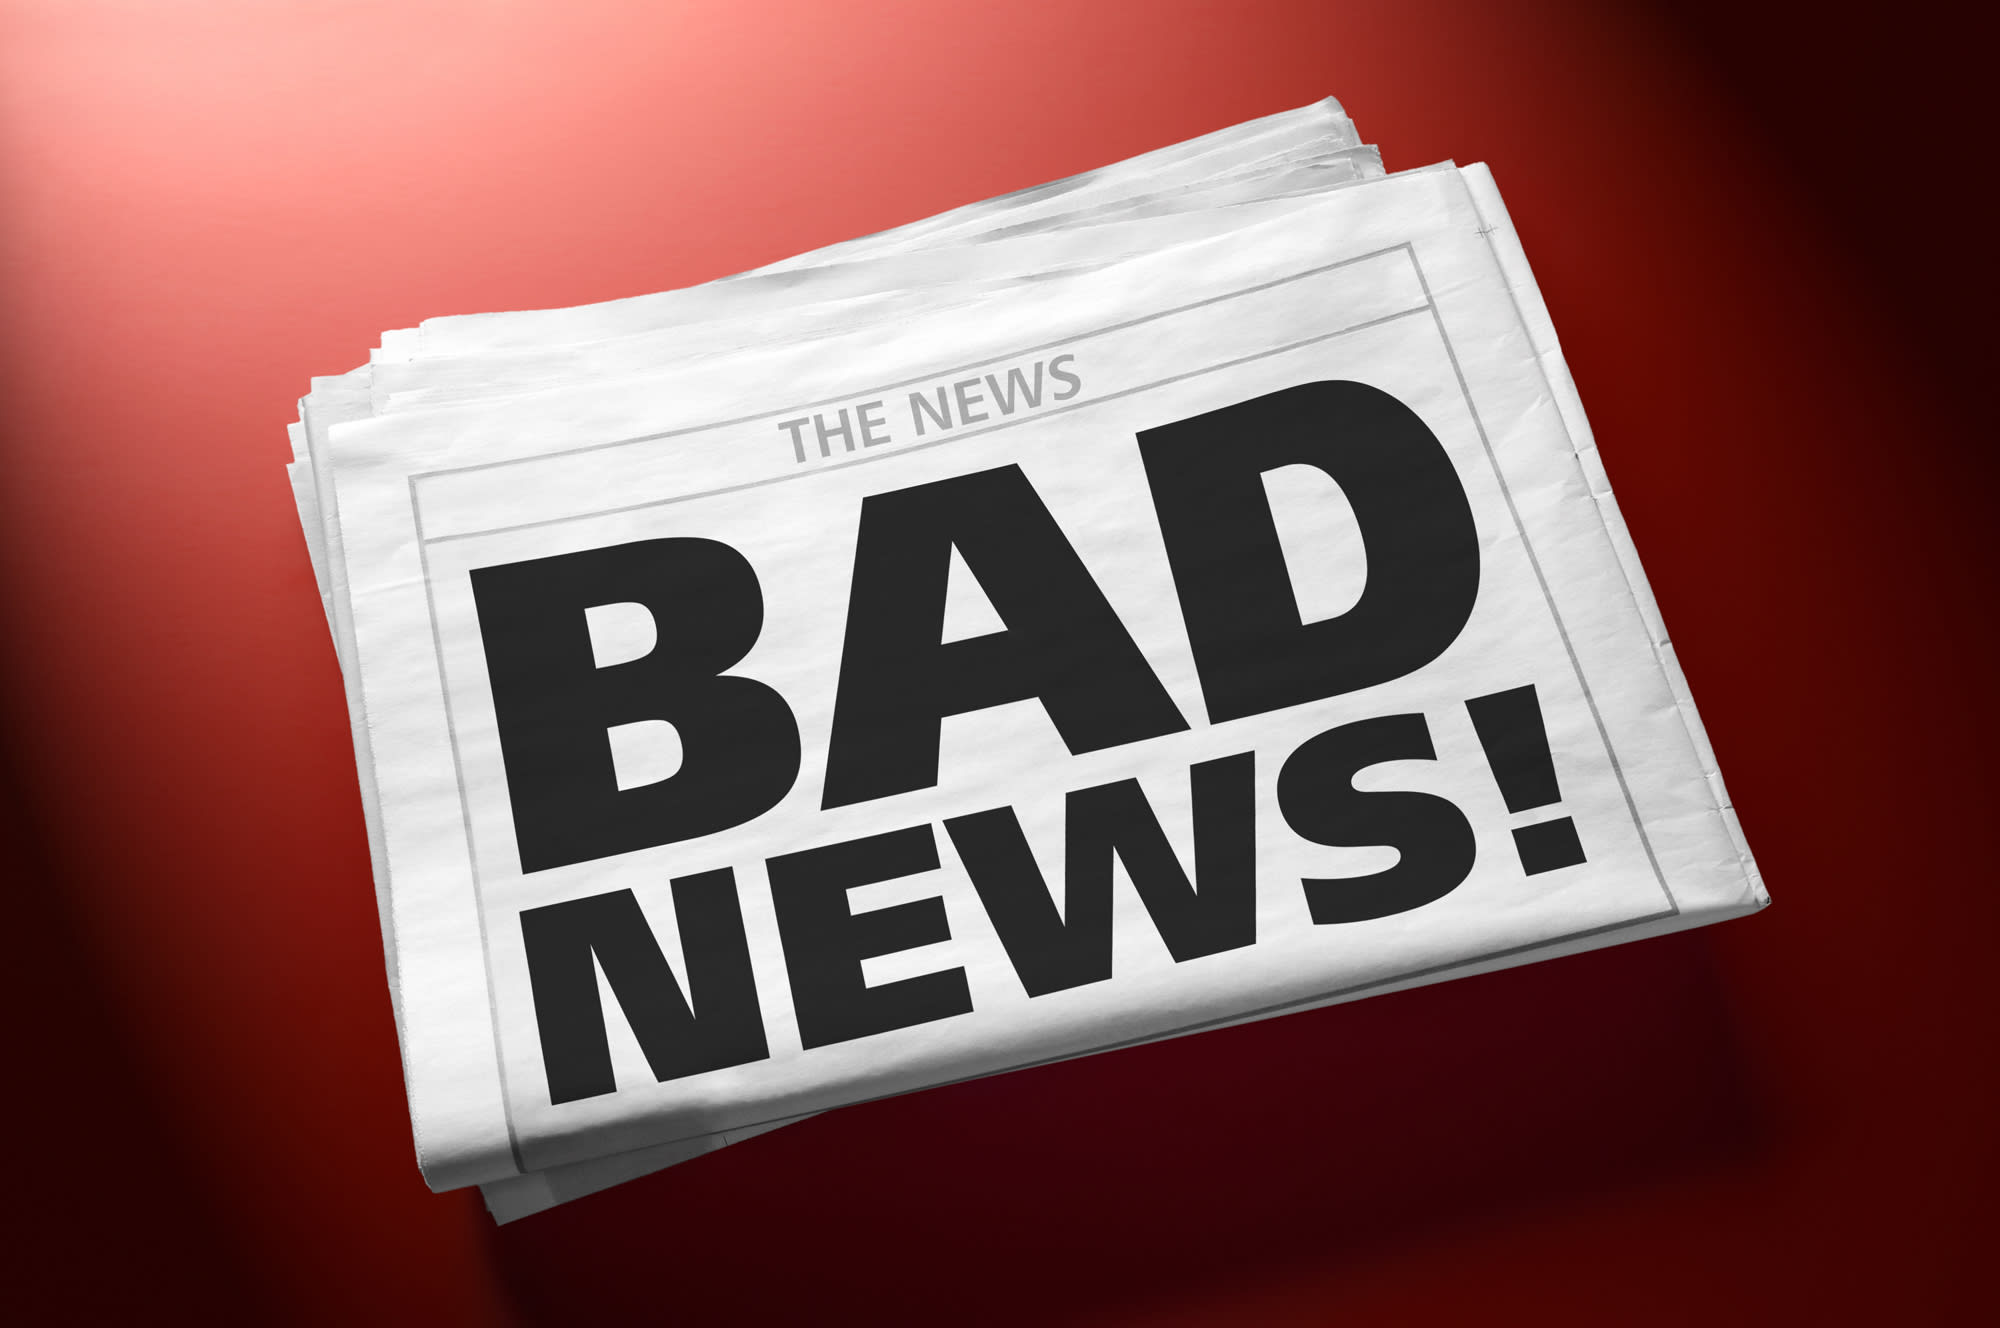 How to deliver bad news to employees - How To Deliver Bad News To Employees 12